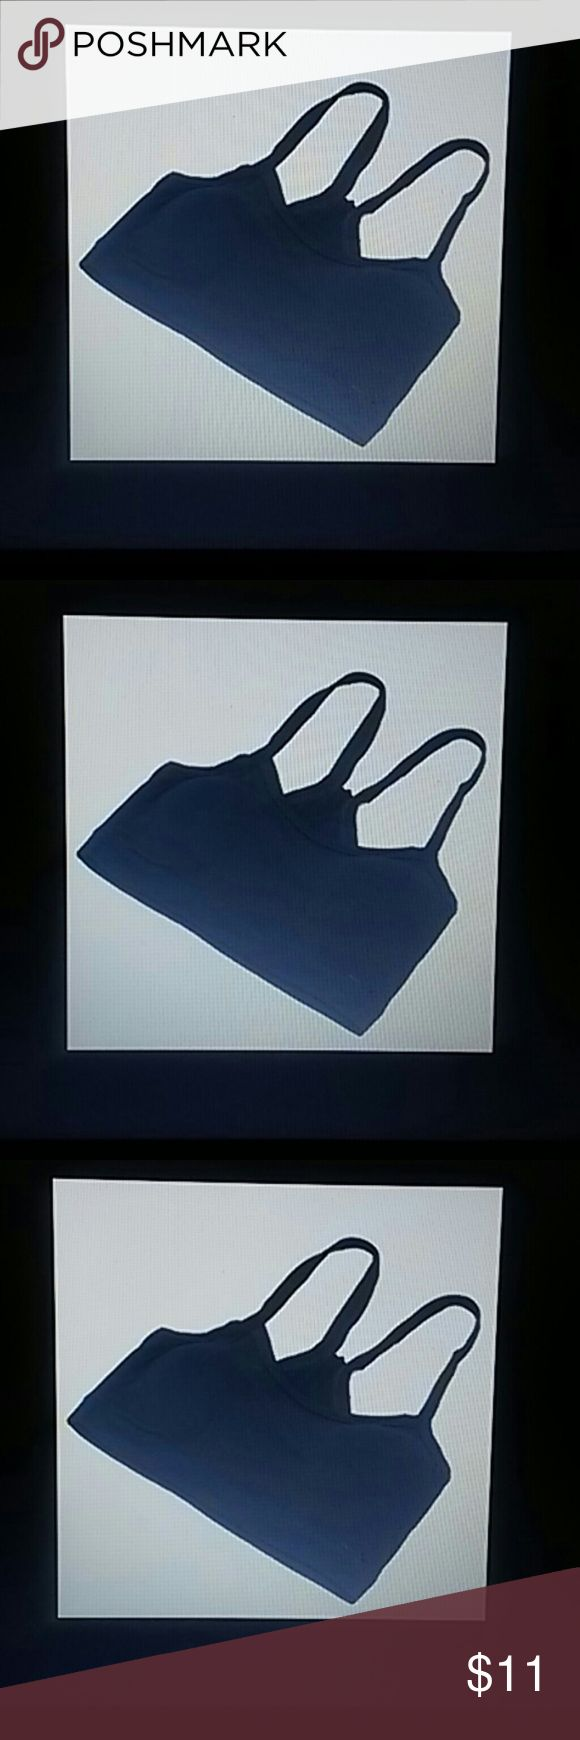 Black Women Sports Bra crop top cami Gym Yoga Bra You are Viewing 1 Brand New Women's Sports Bra Black petite Solid crop top cami Cotton Gym Yoga Bra Wire Free one size. Lenght 28cm/11.02 inches Bust size 64-88cm /25.2 inches 34.65 inches, CHEST PADS are NOT INCLUDED. Super elastic, breathable & Comfortable, 80  % Cotton 20 % Spandex made in China. Majestic Michigan Products Tops Muscle Tees